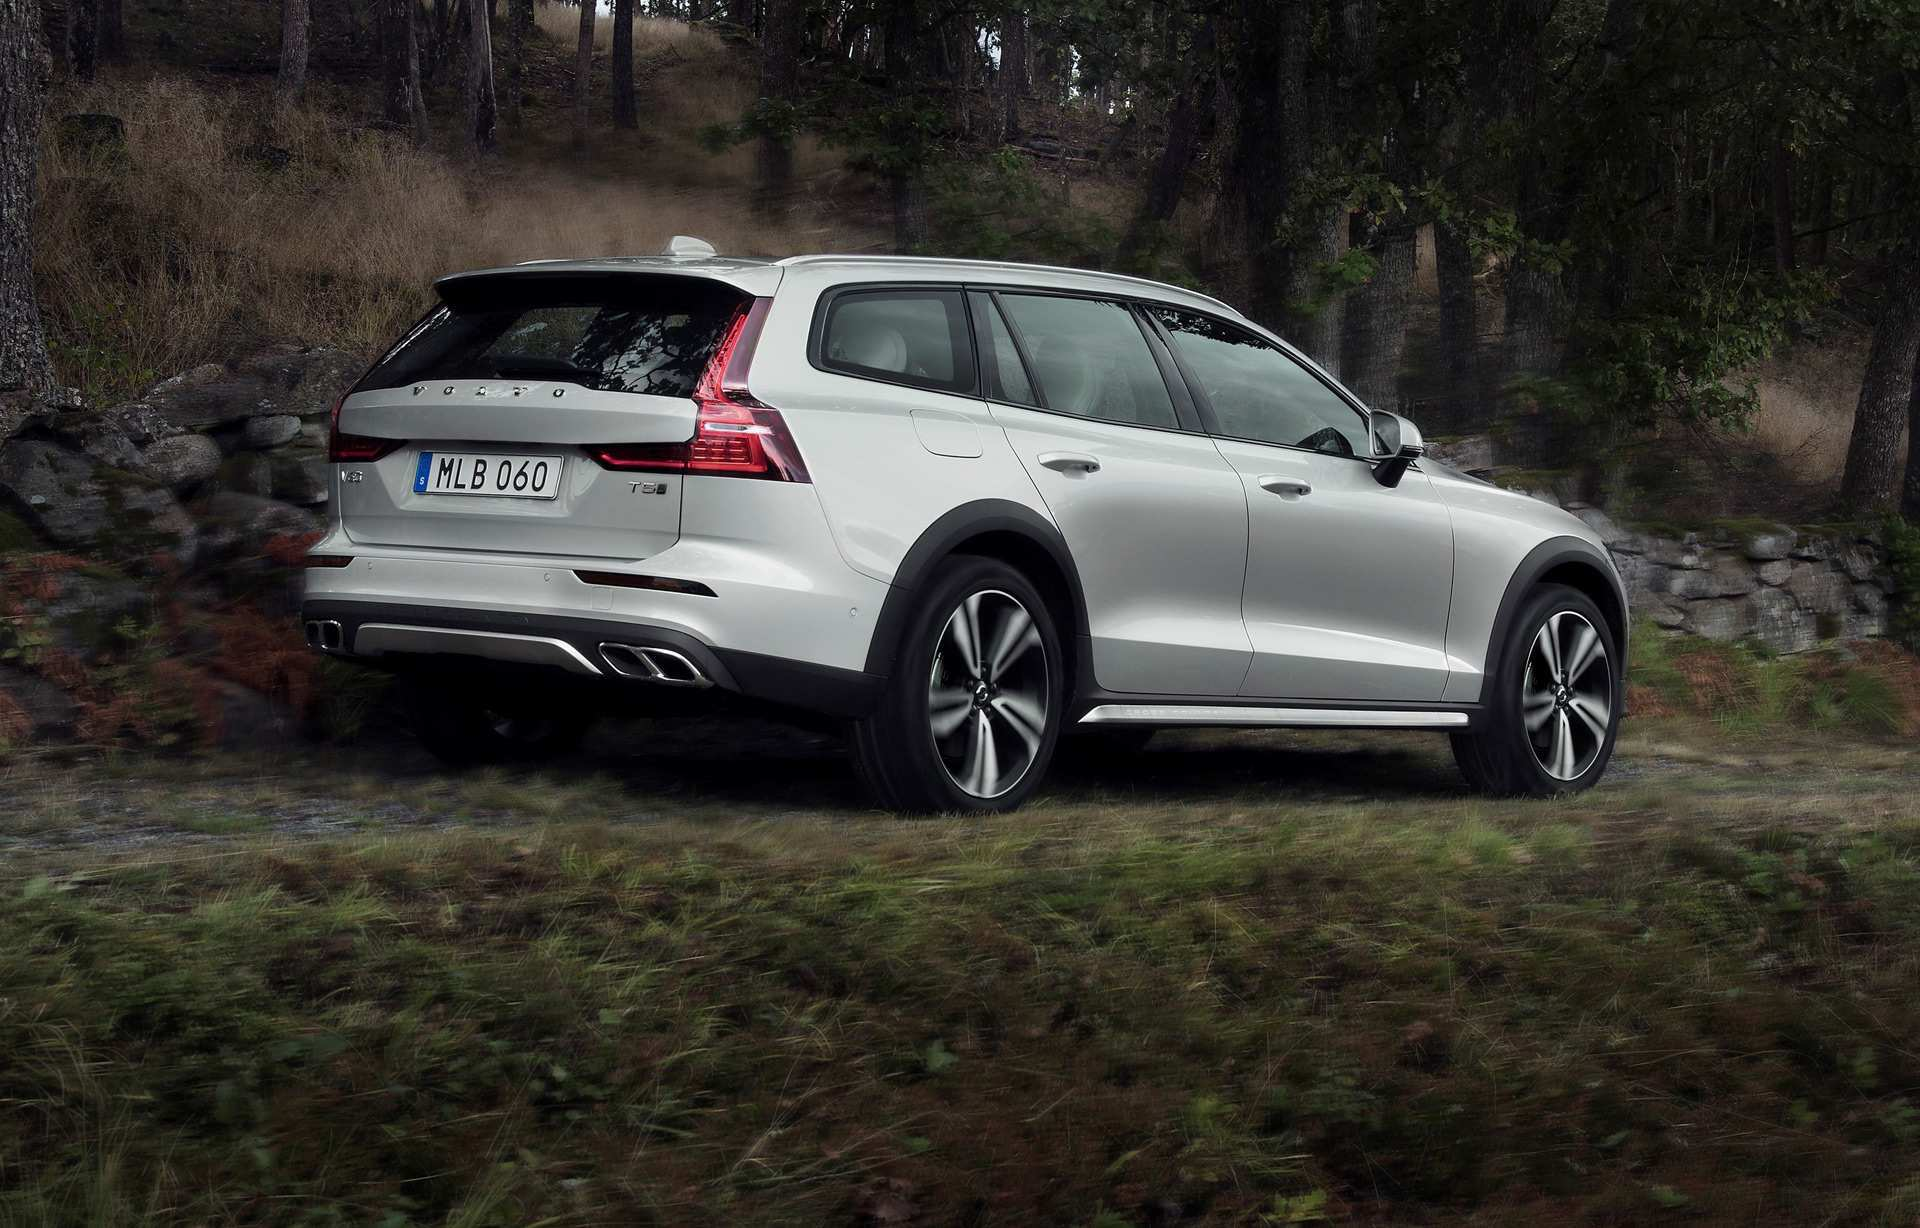 80 Best Review Volvo V60 2020 Specs and Review by Volvo V60 2020